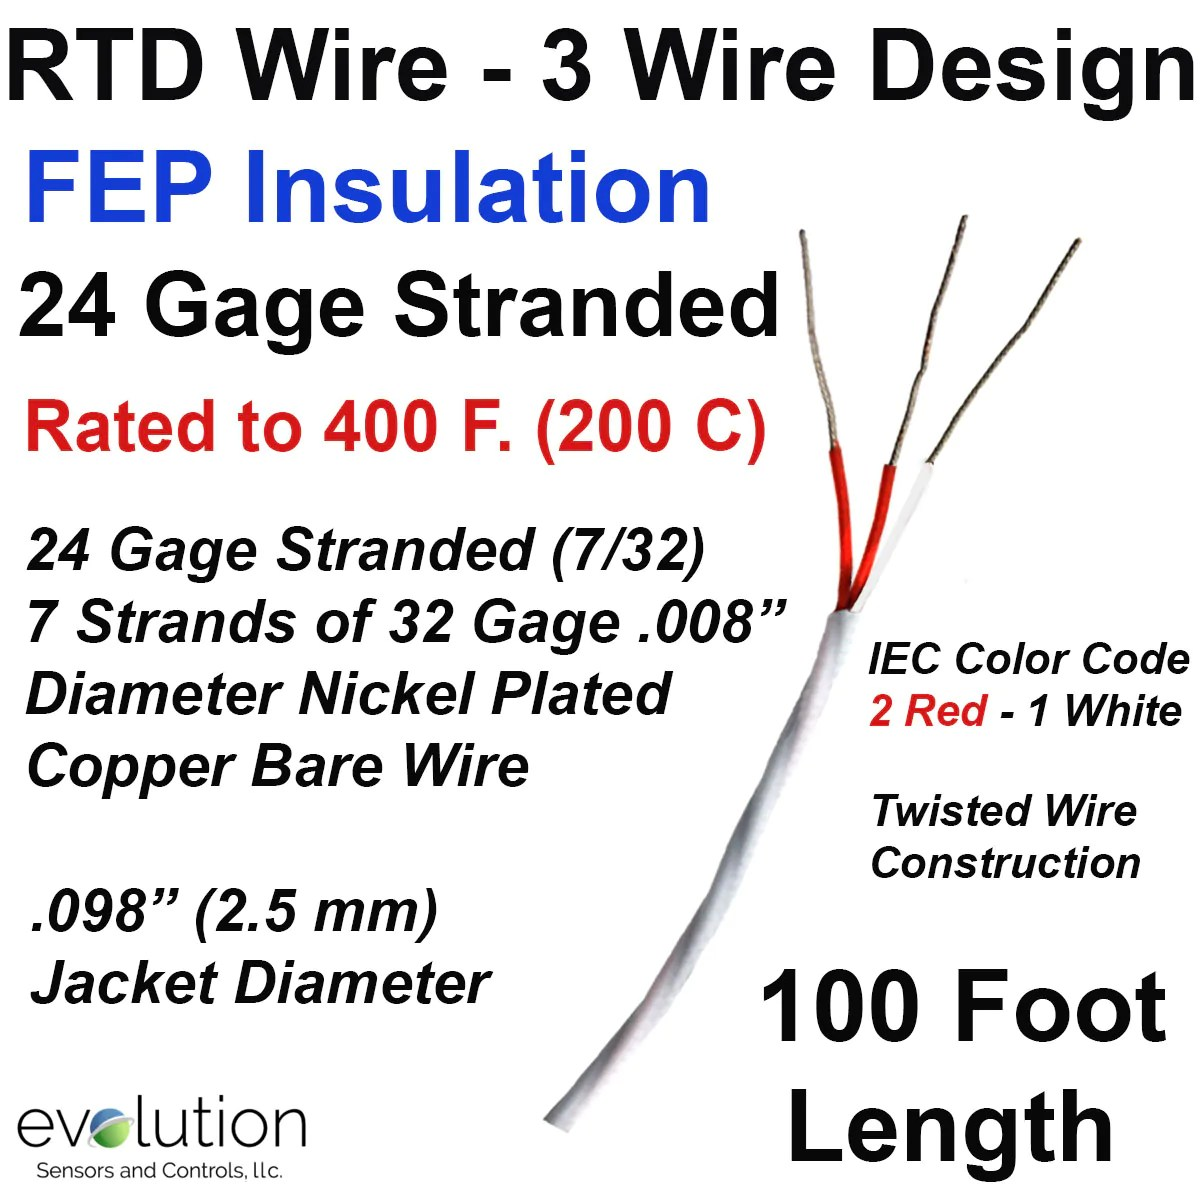 small resolution of rtd wiring color code wiring diagram page 3 wire rtd wiring color code rtd wiring color code